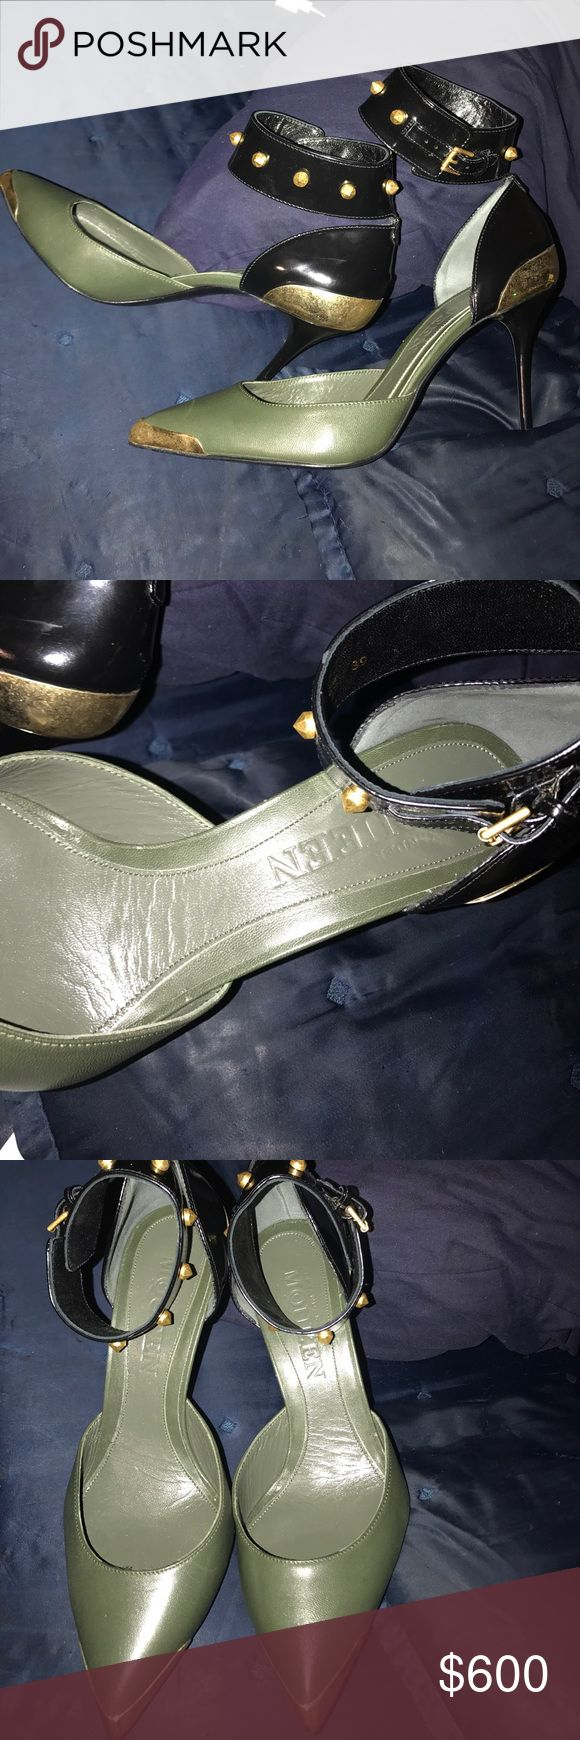 Alexander Mcqueen heels 🔥🔥sale 🔥🔥 worn only once (no dirt) 500 OBOonly no box or dust bags.... willing to trade... Alexander McQueen Shoes Heels